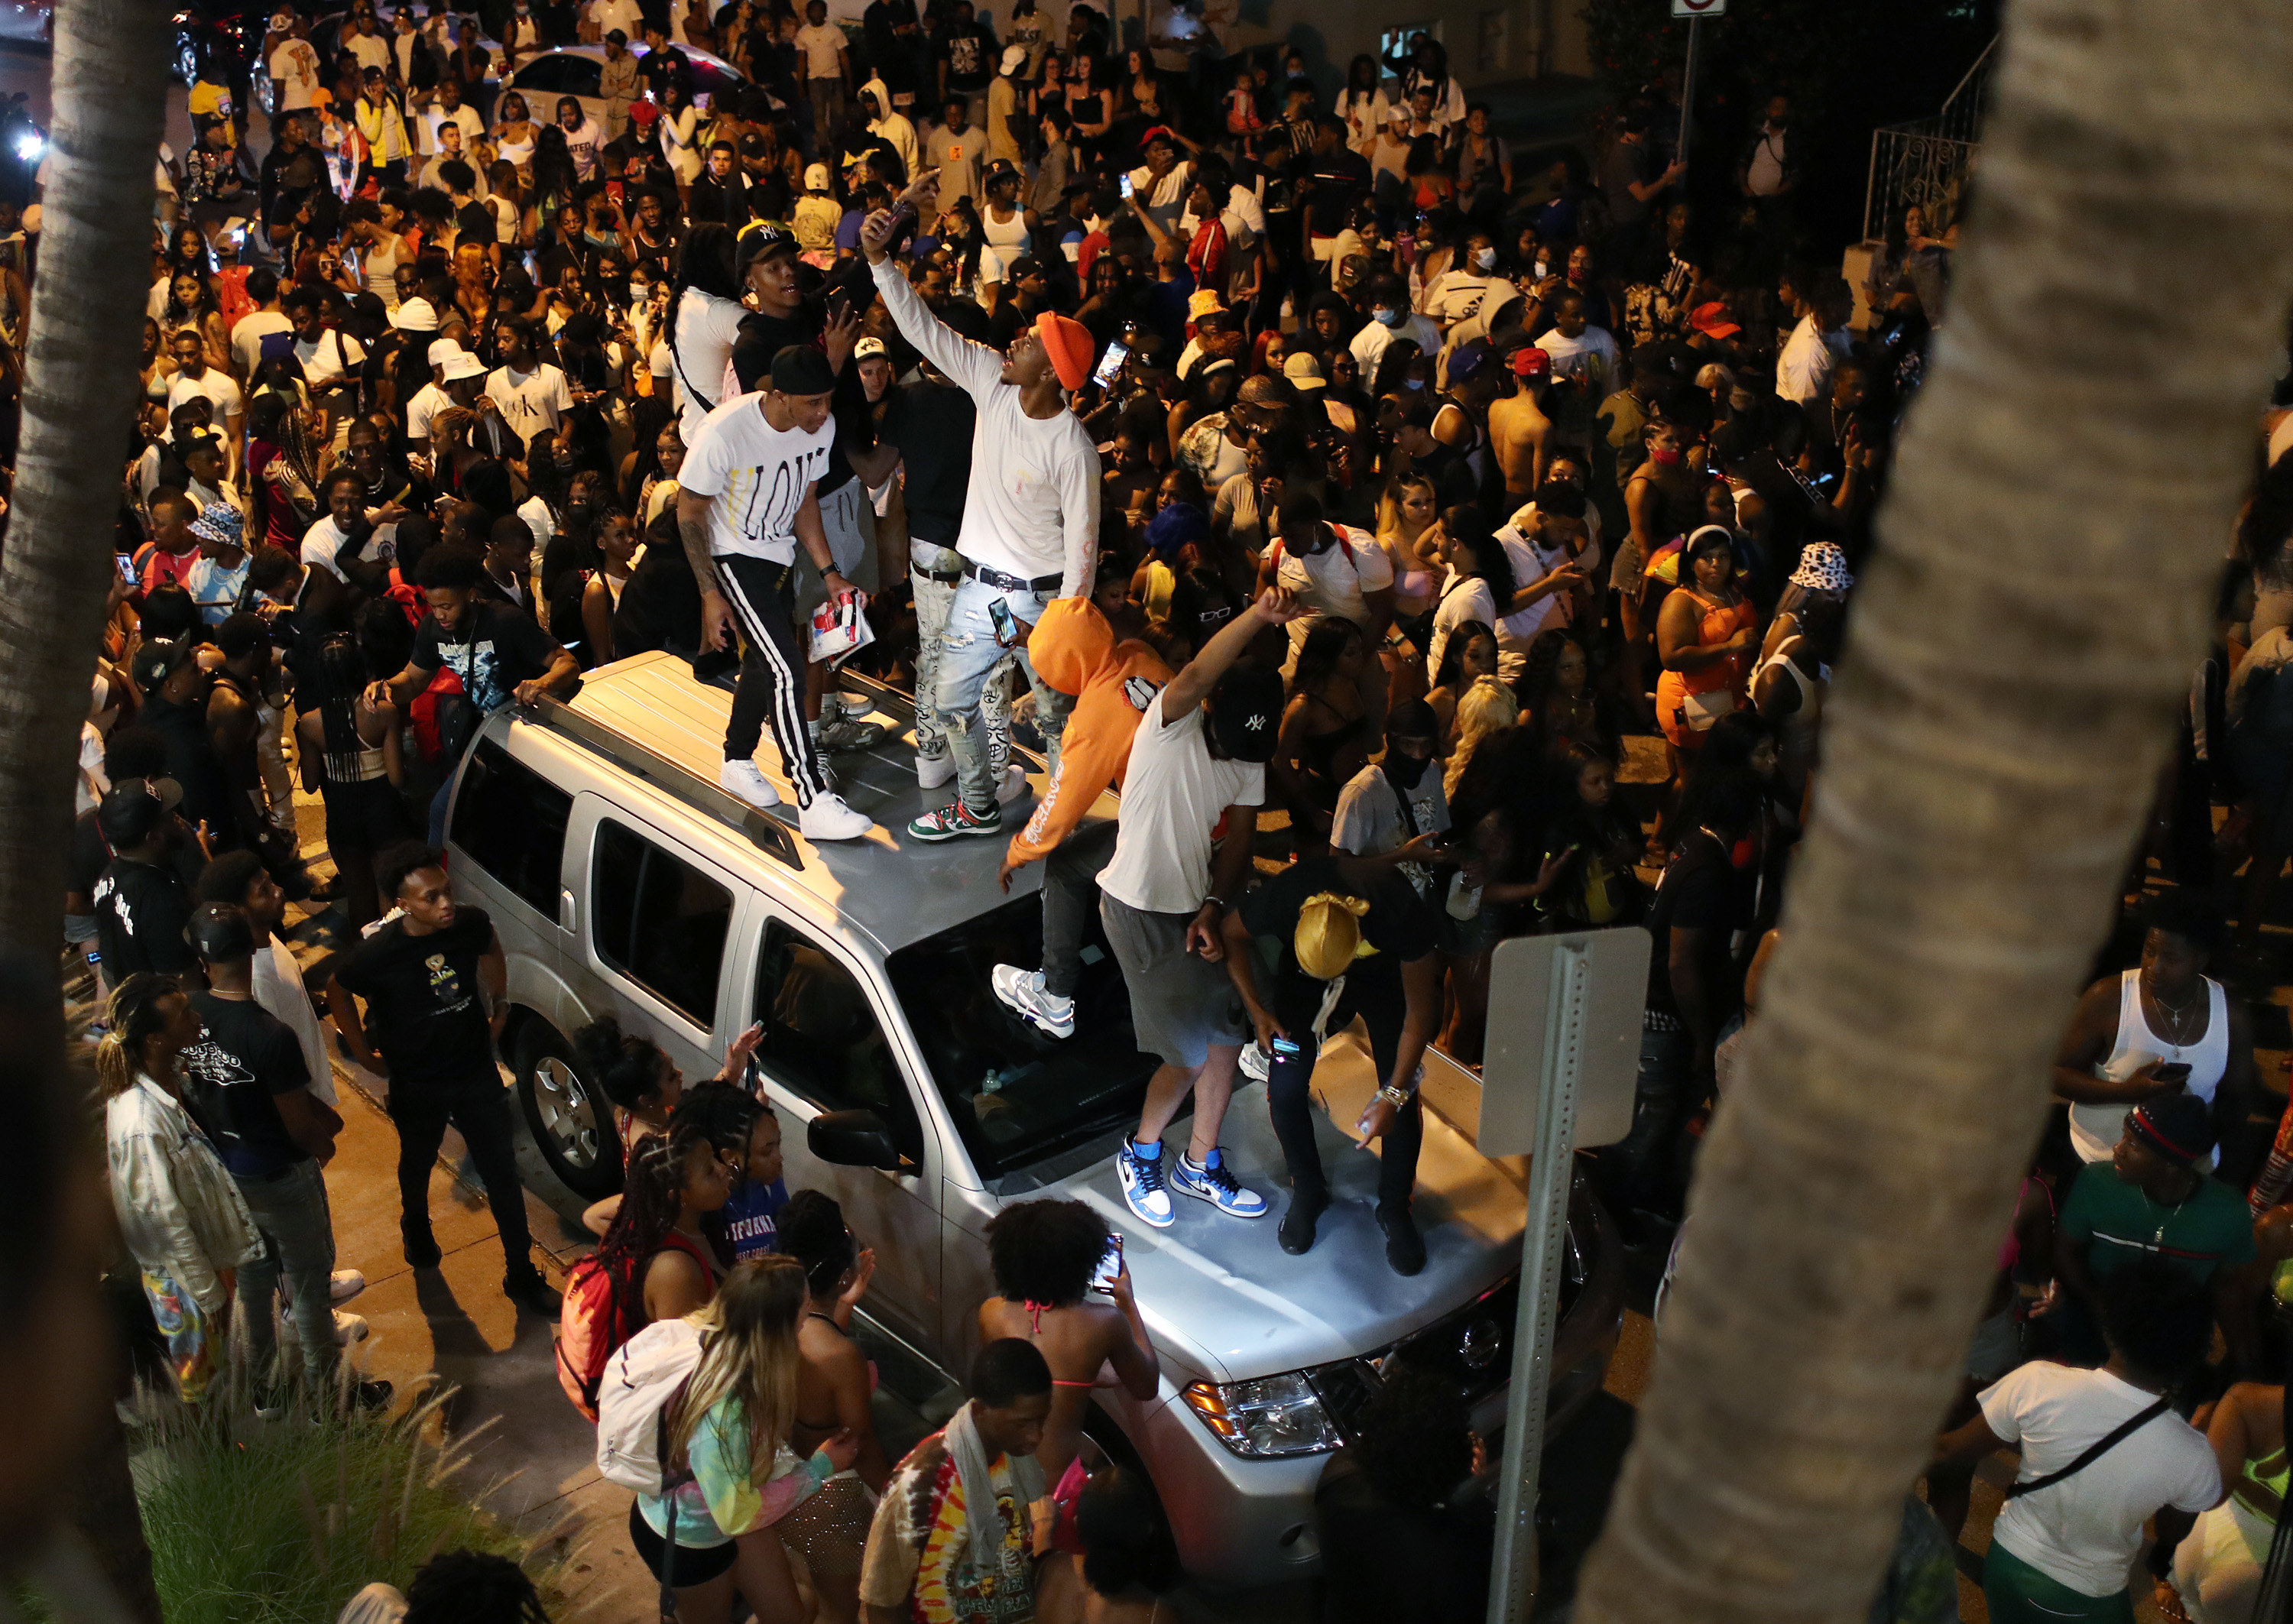 A group of guys on top of a car on a crowded street